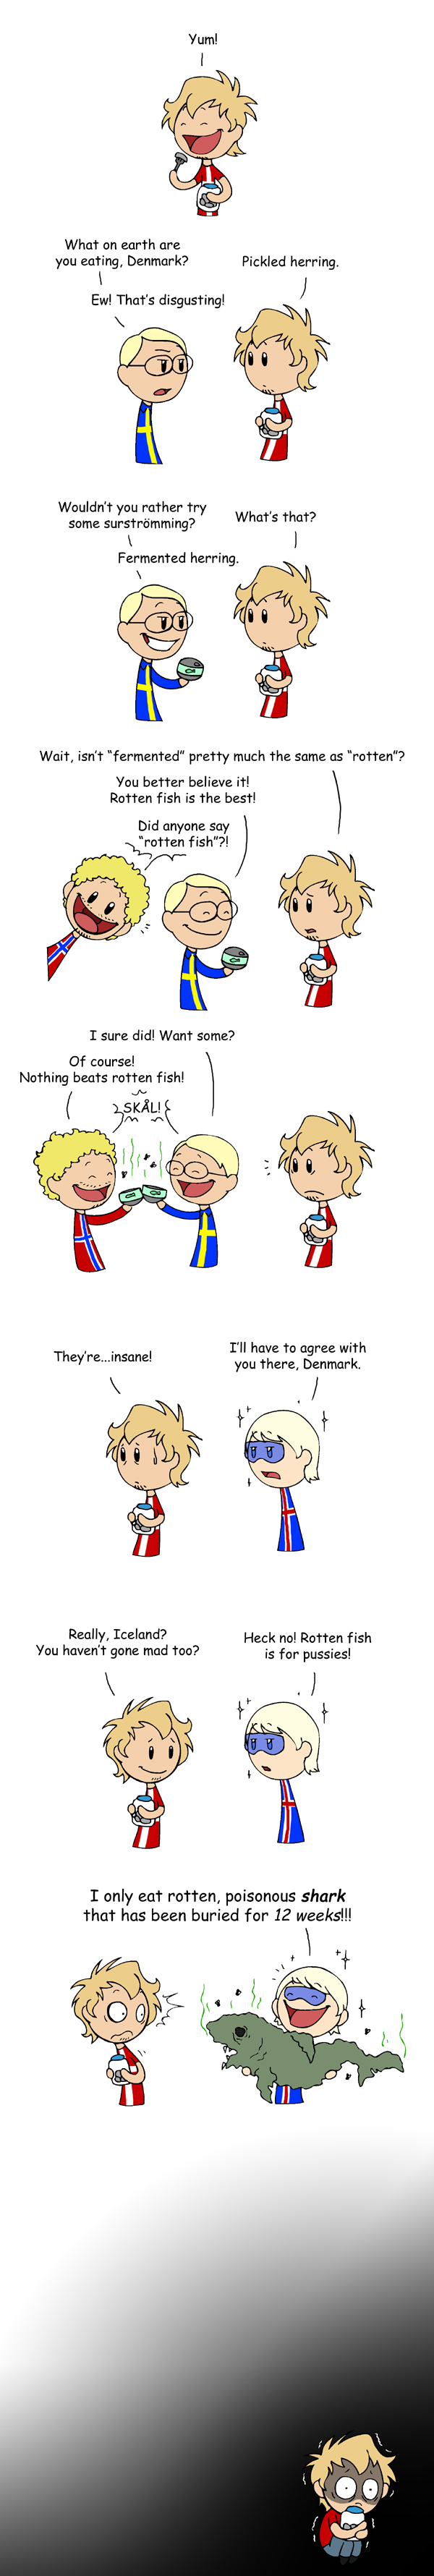 http://satwcomic.com/art/nordics-like-fish.jpg